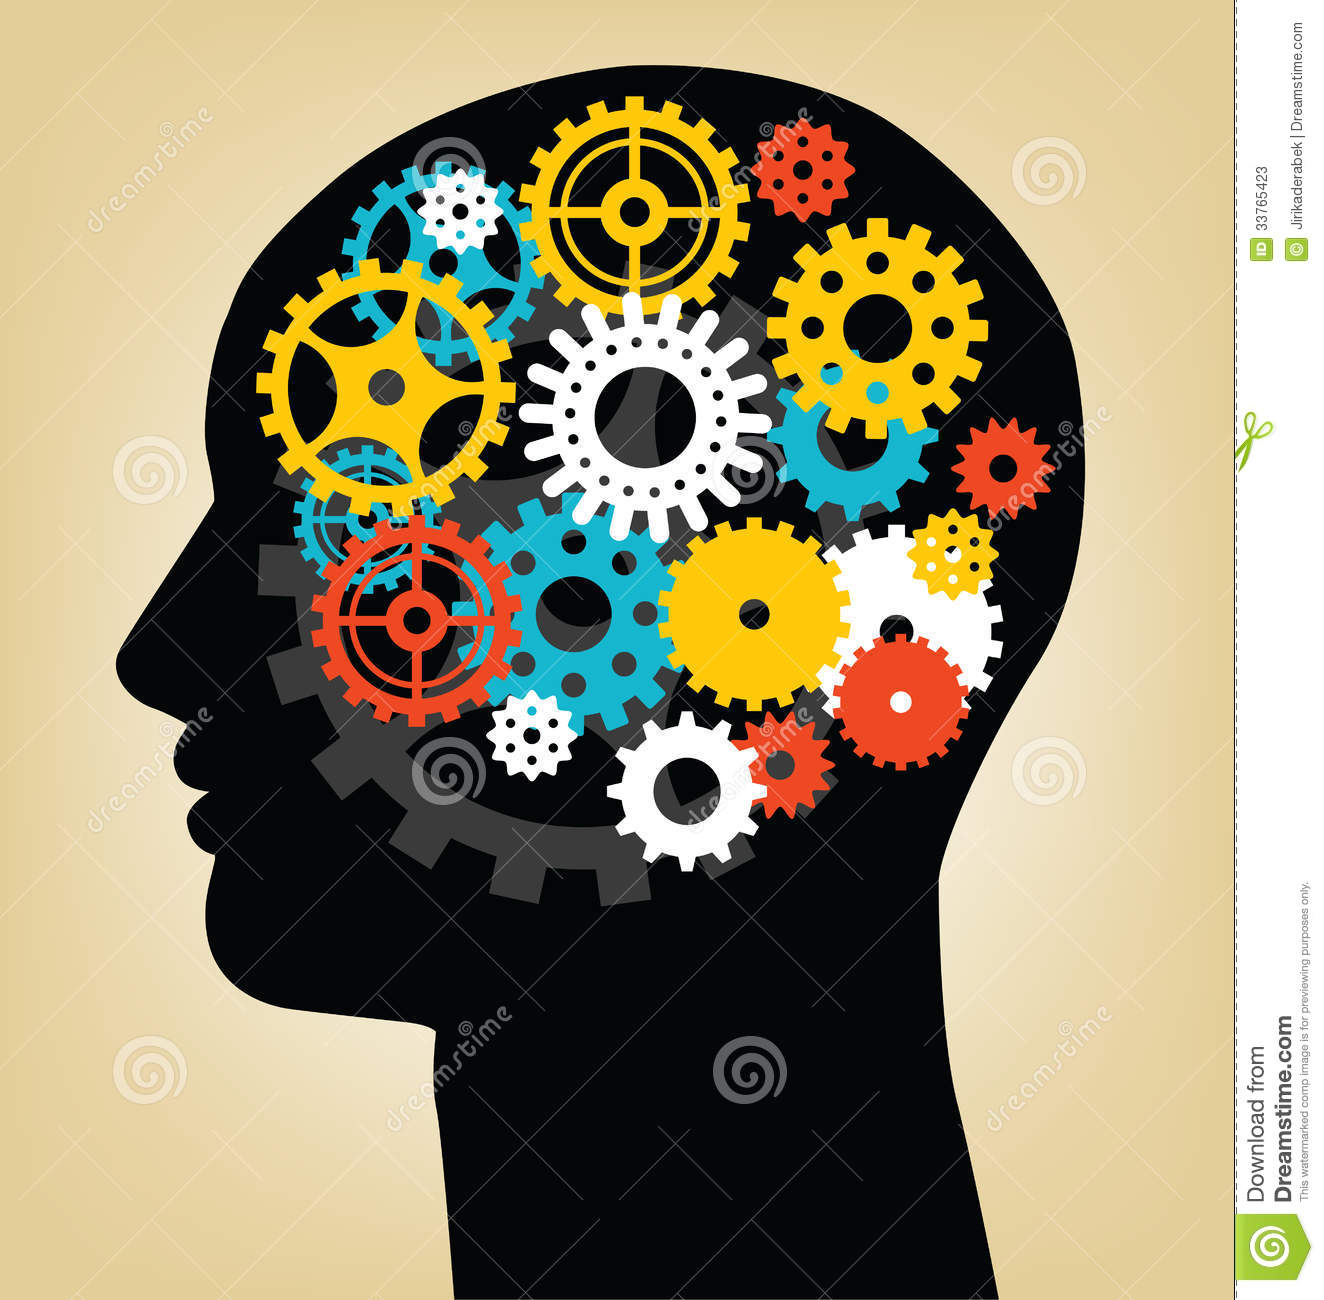 Abstract vector illustration of thinking man.